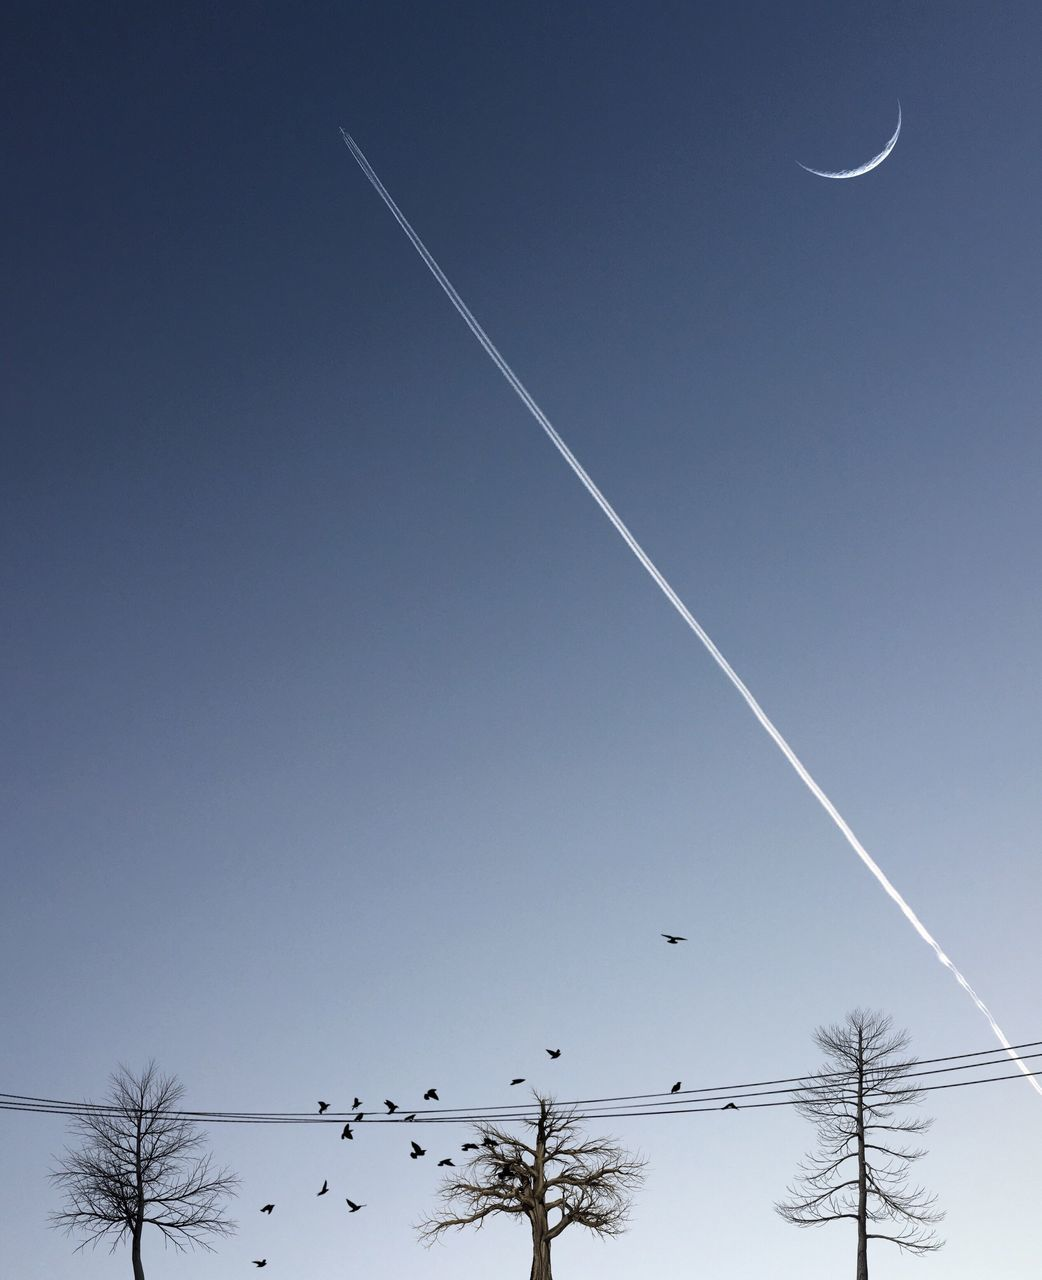 vapor trail, contrail, nature, clear sky, blue, beauty in nature, scenics, moon, low angle view, tranquility, outdoors, no people, sky, tree, day, flying